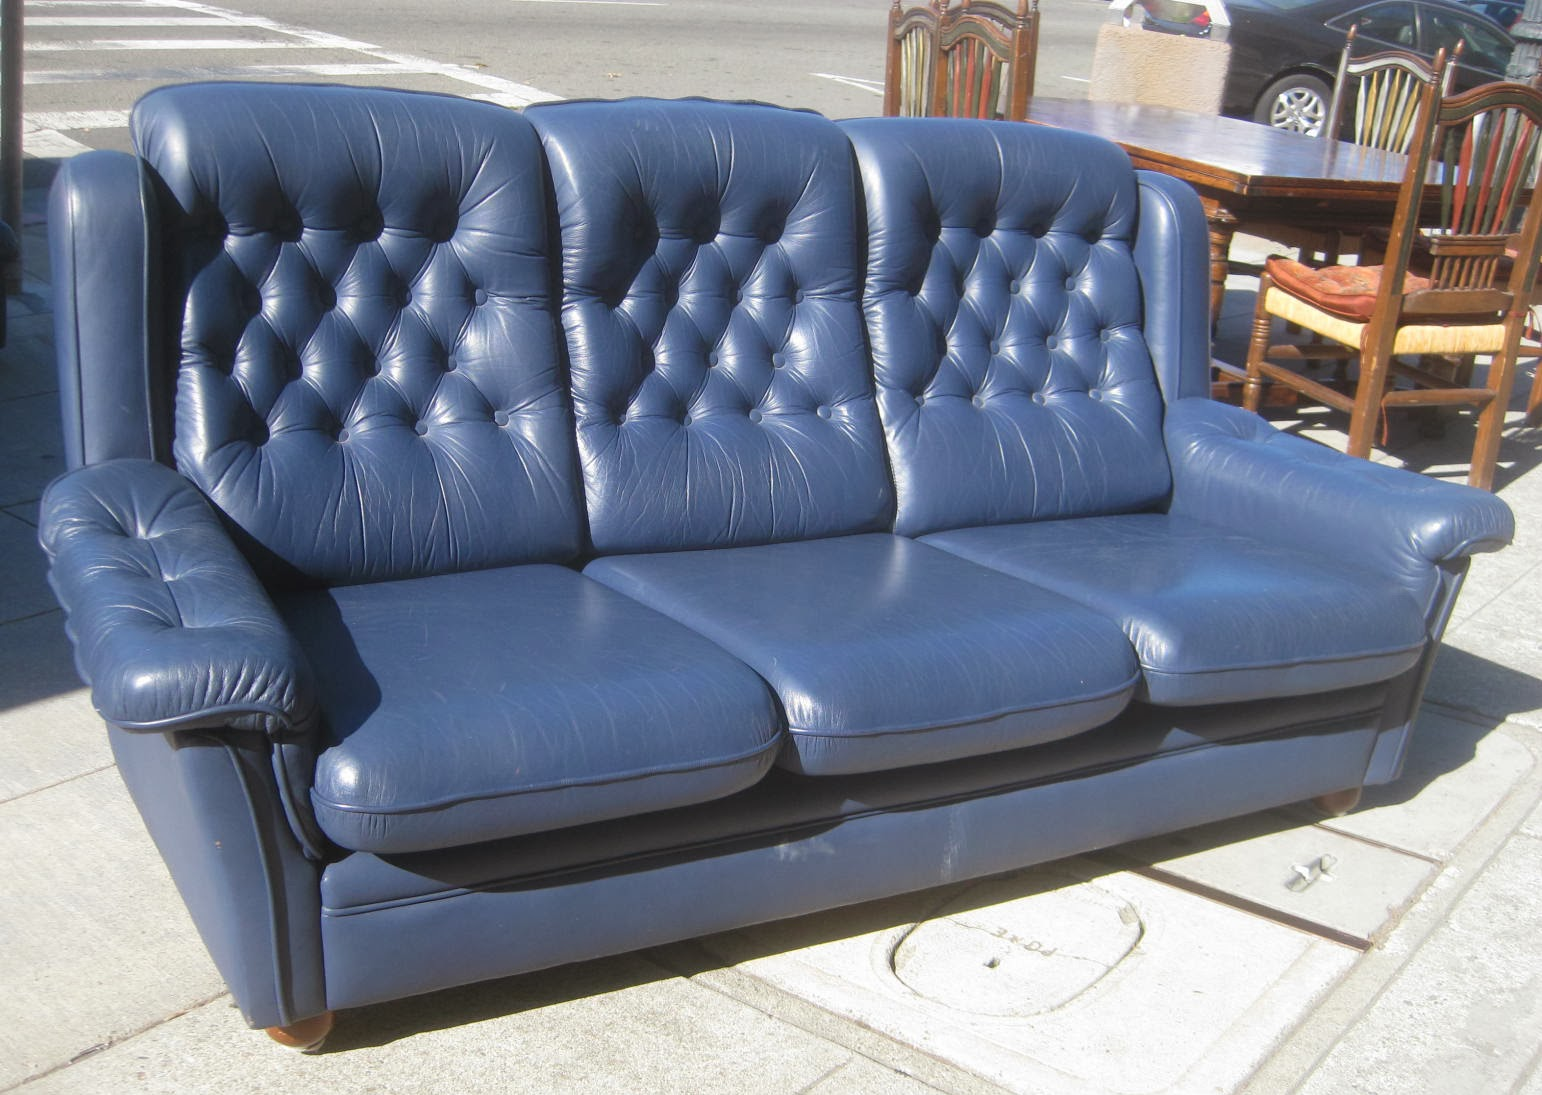 Blue Leather Chair Uhuru Furniture And Collectibles Sold Blue Leather Sofa